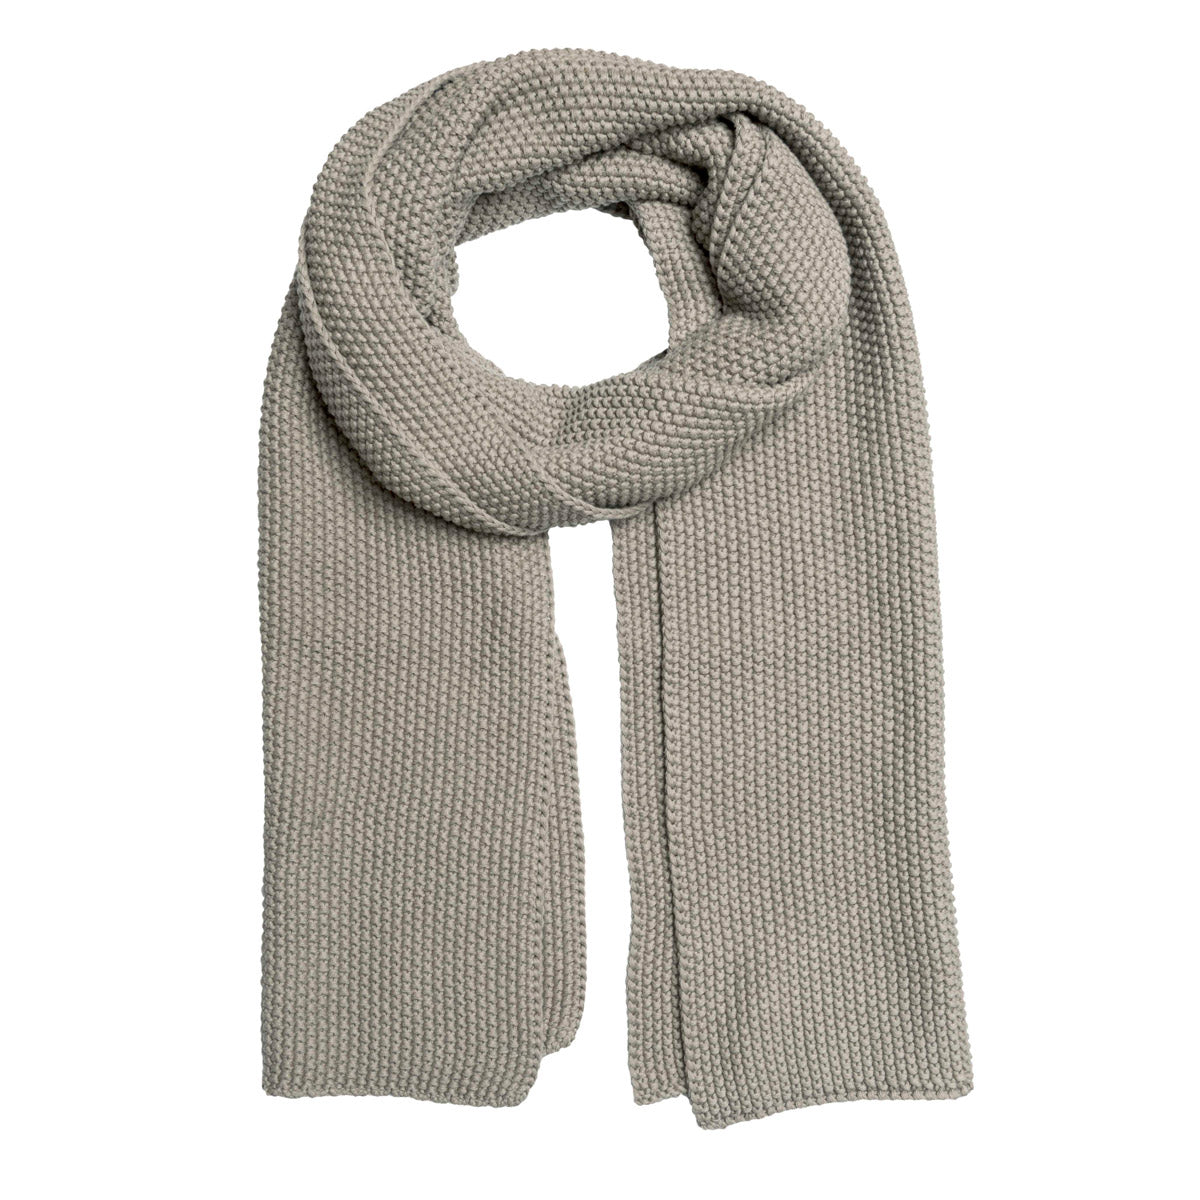 Grey Taupe Knitted Scarf